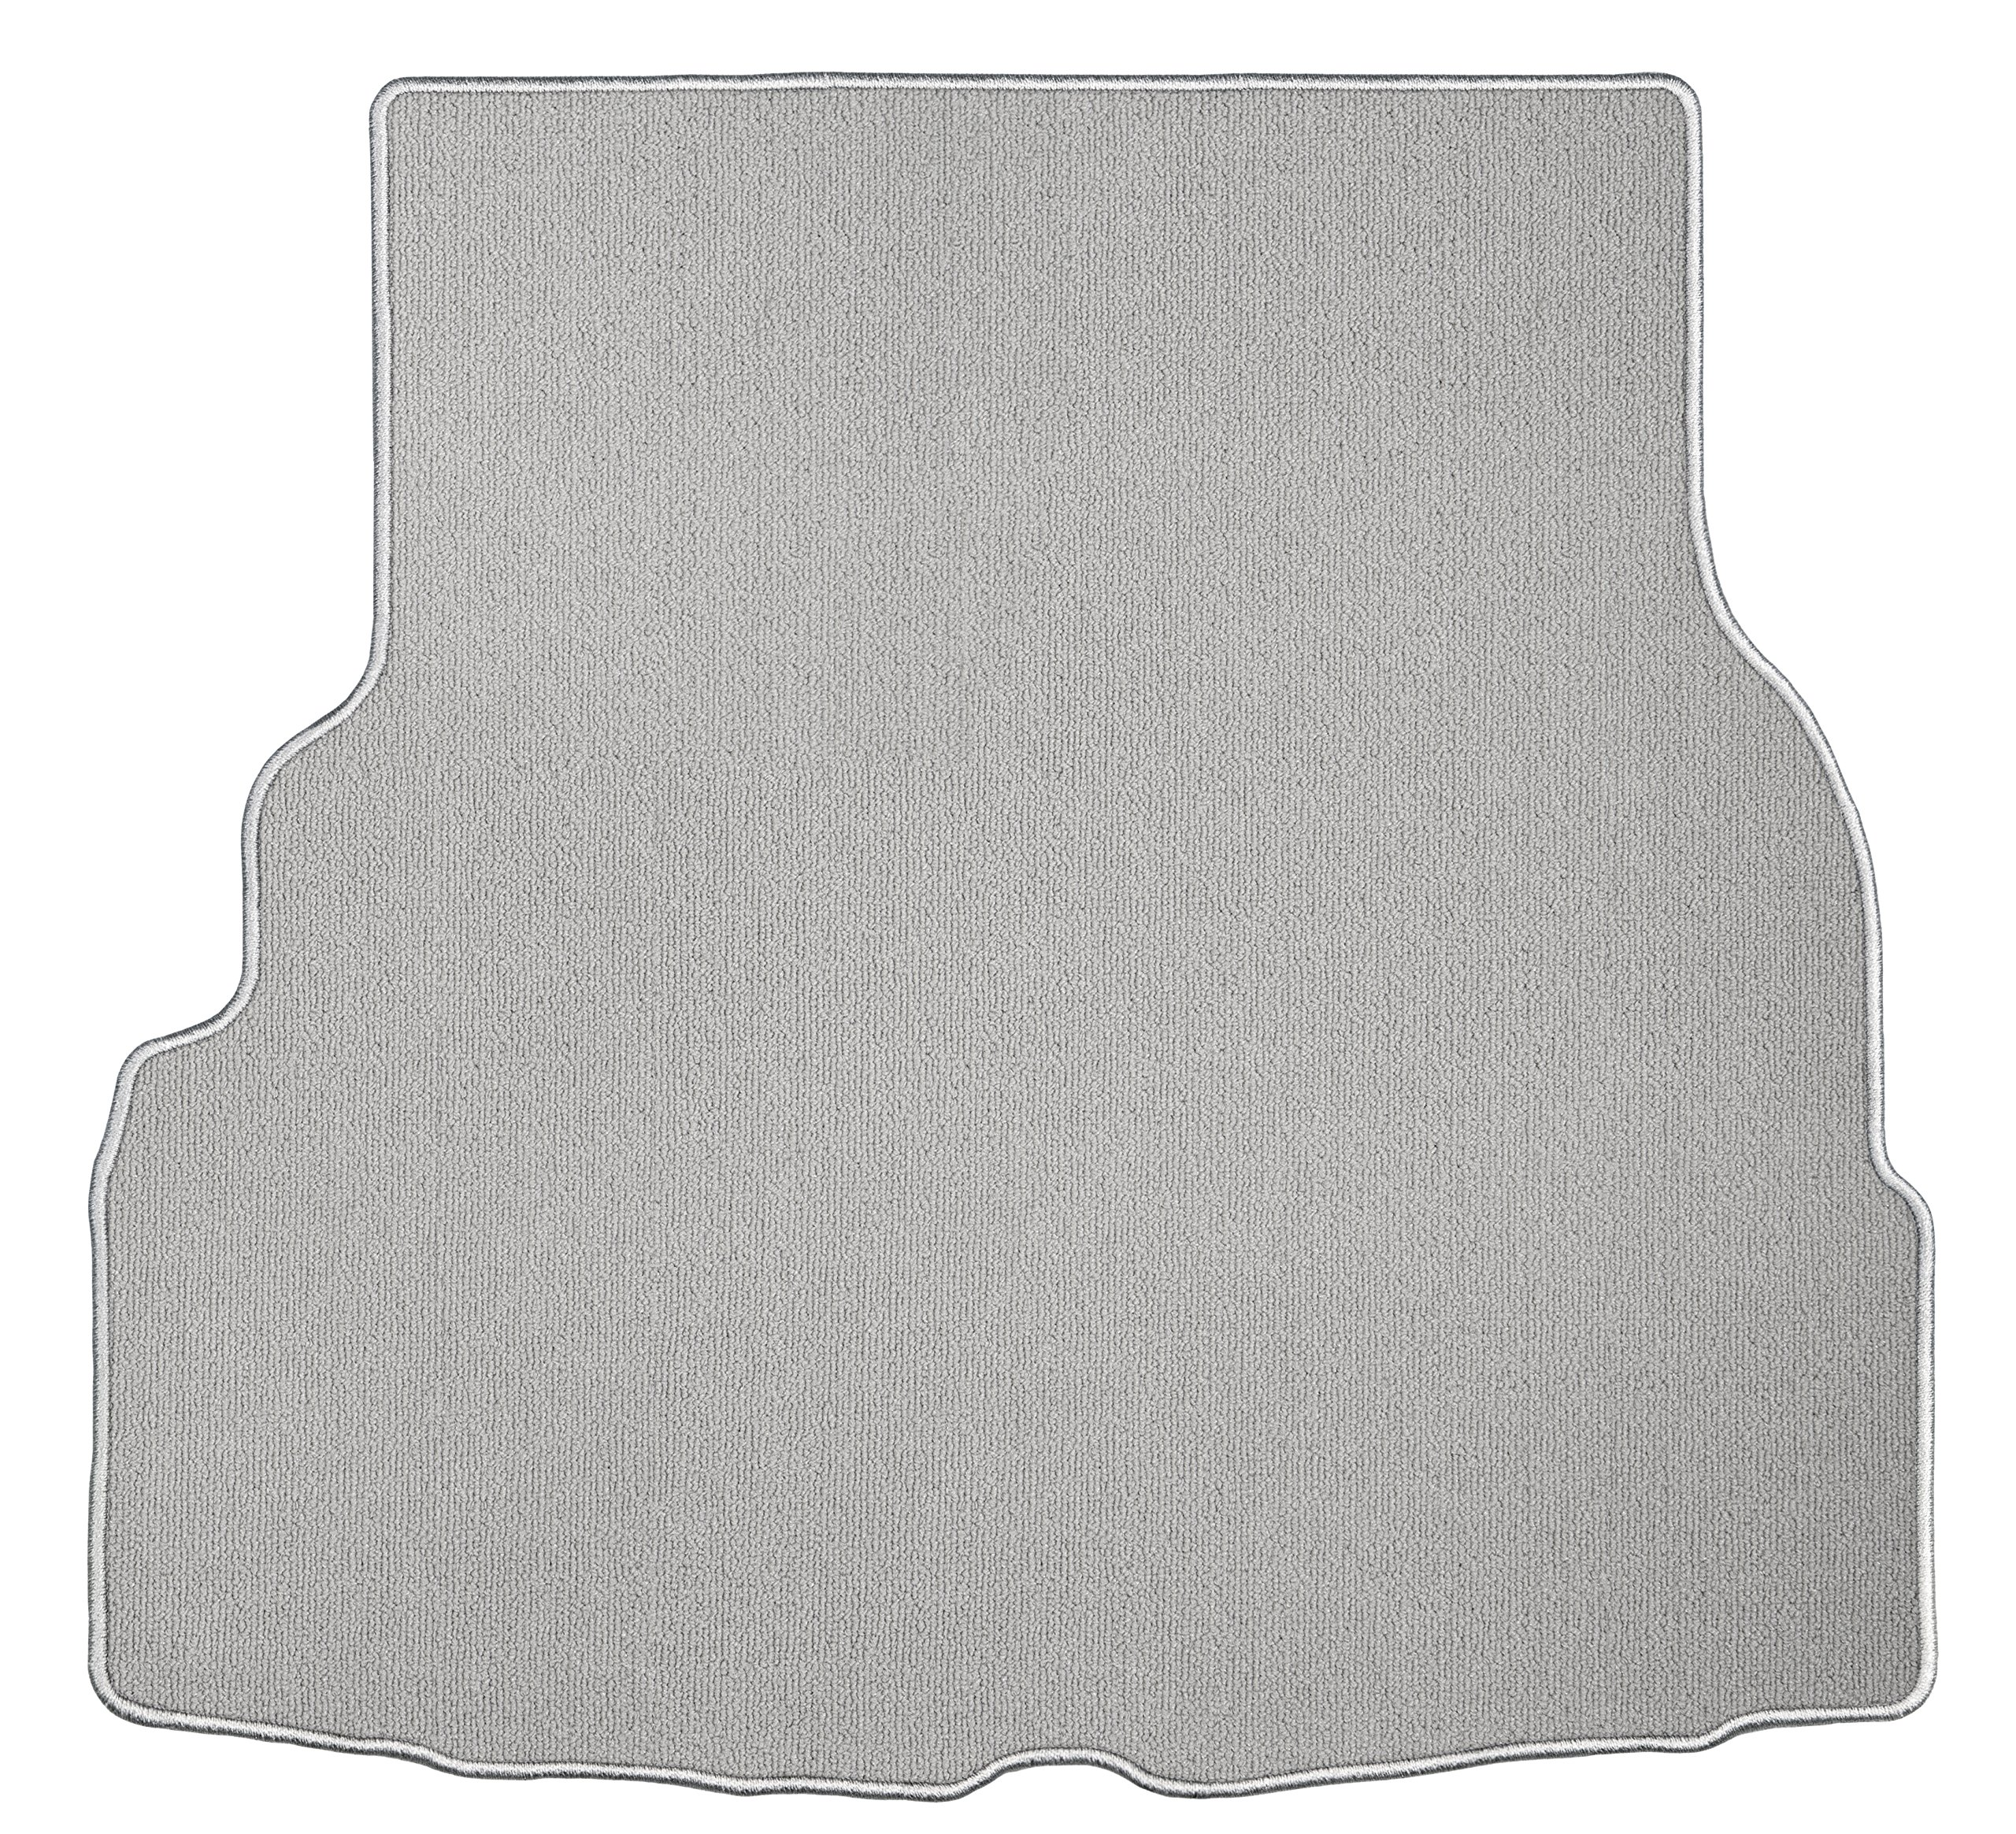 1996 GGBAILEY D3230A-F1A-RD-IS Custom Fit Automotive Carpet Floor Mats for 1994 1995 1997 Honda Accord Wagon Red Oriental Driver /& Passenger